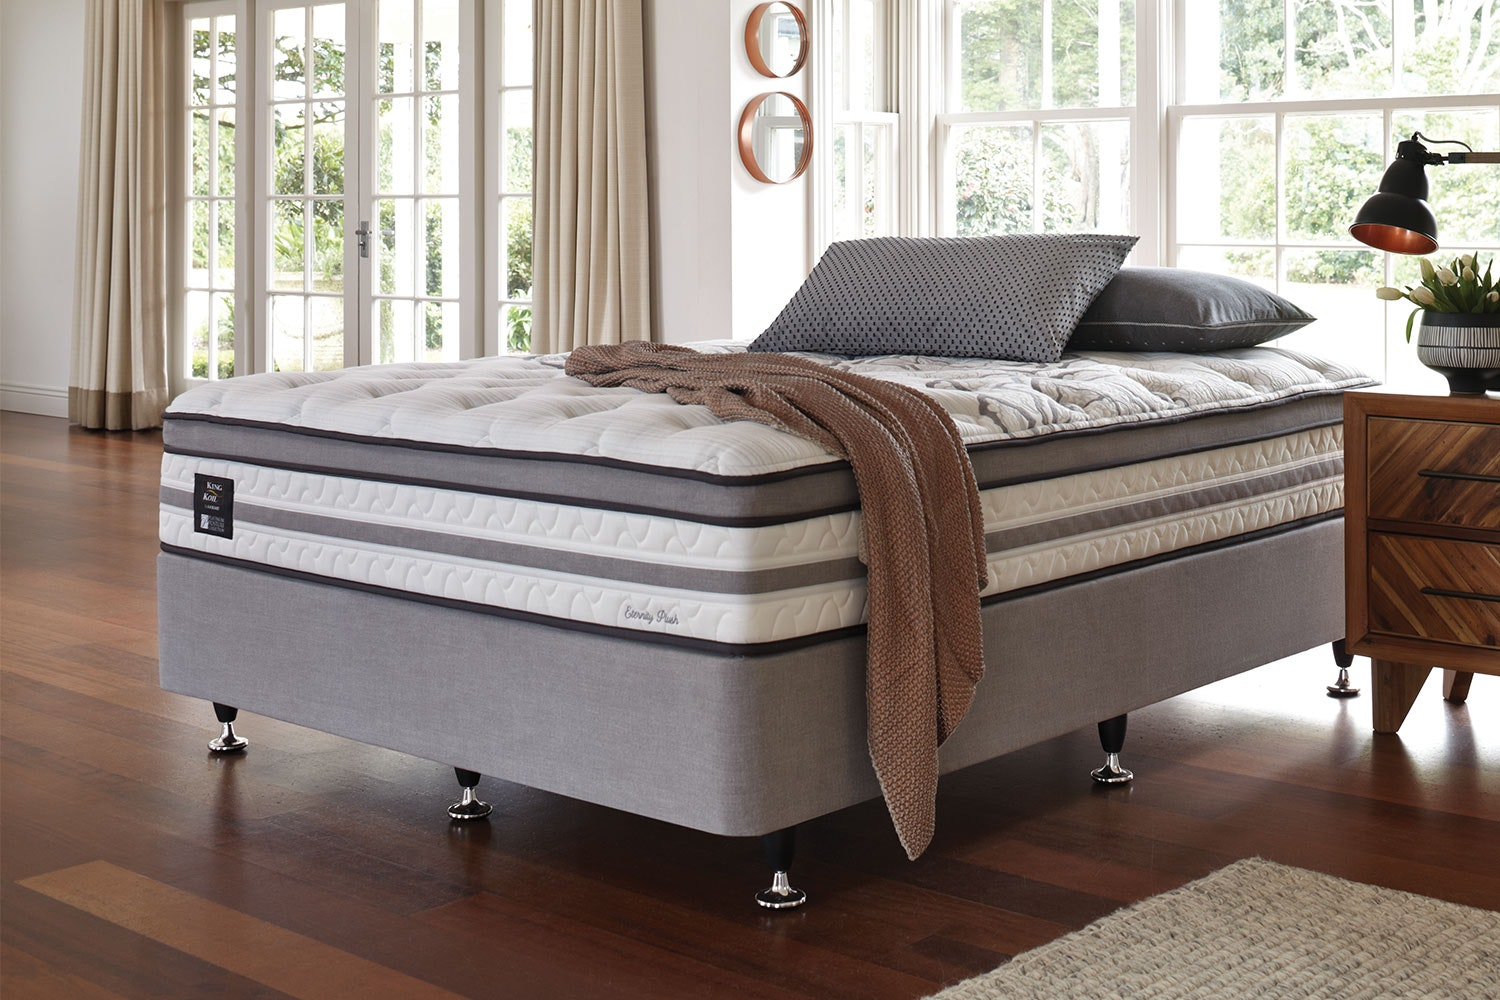 Eternity Plush King Single Bed by King Koil